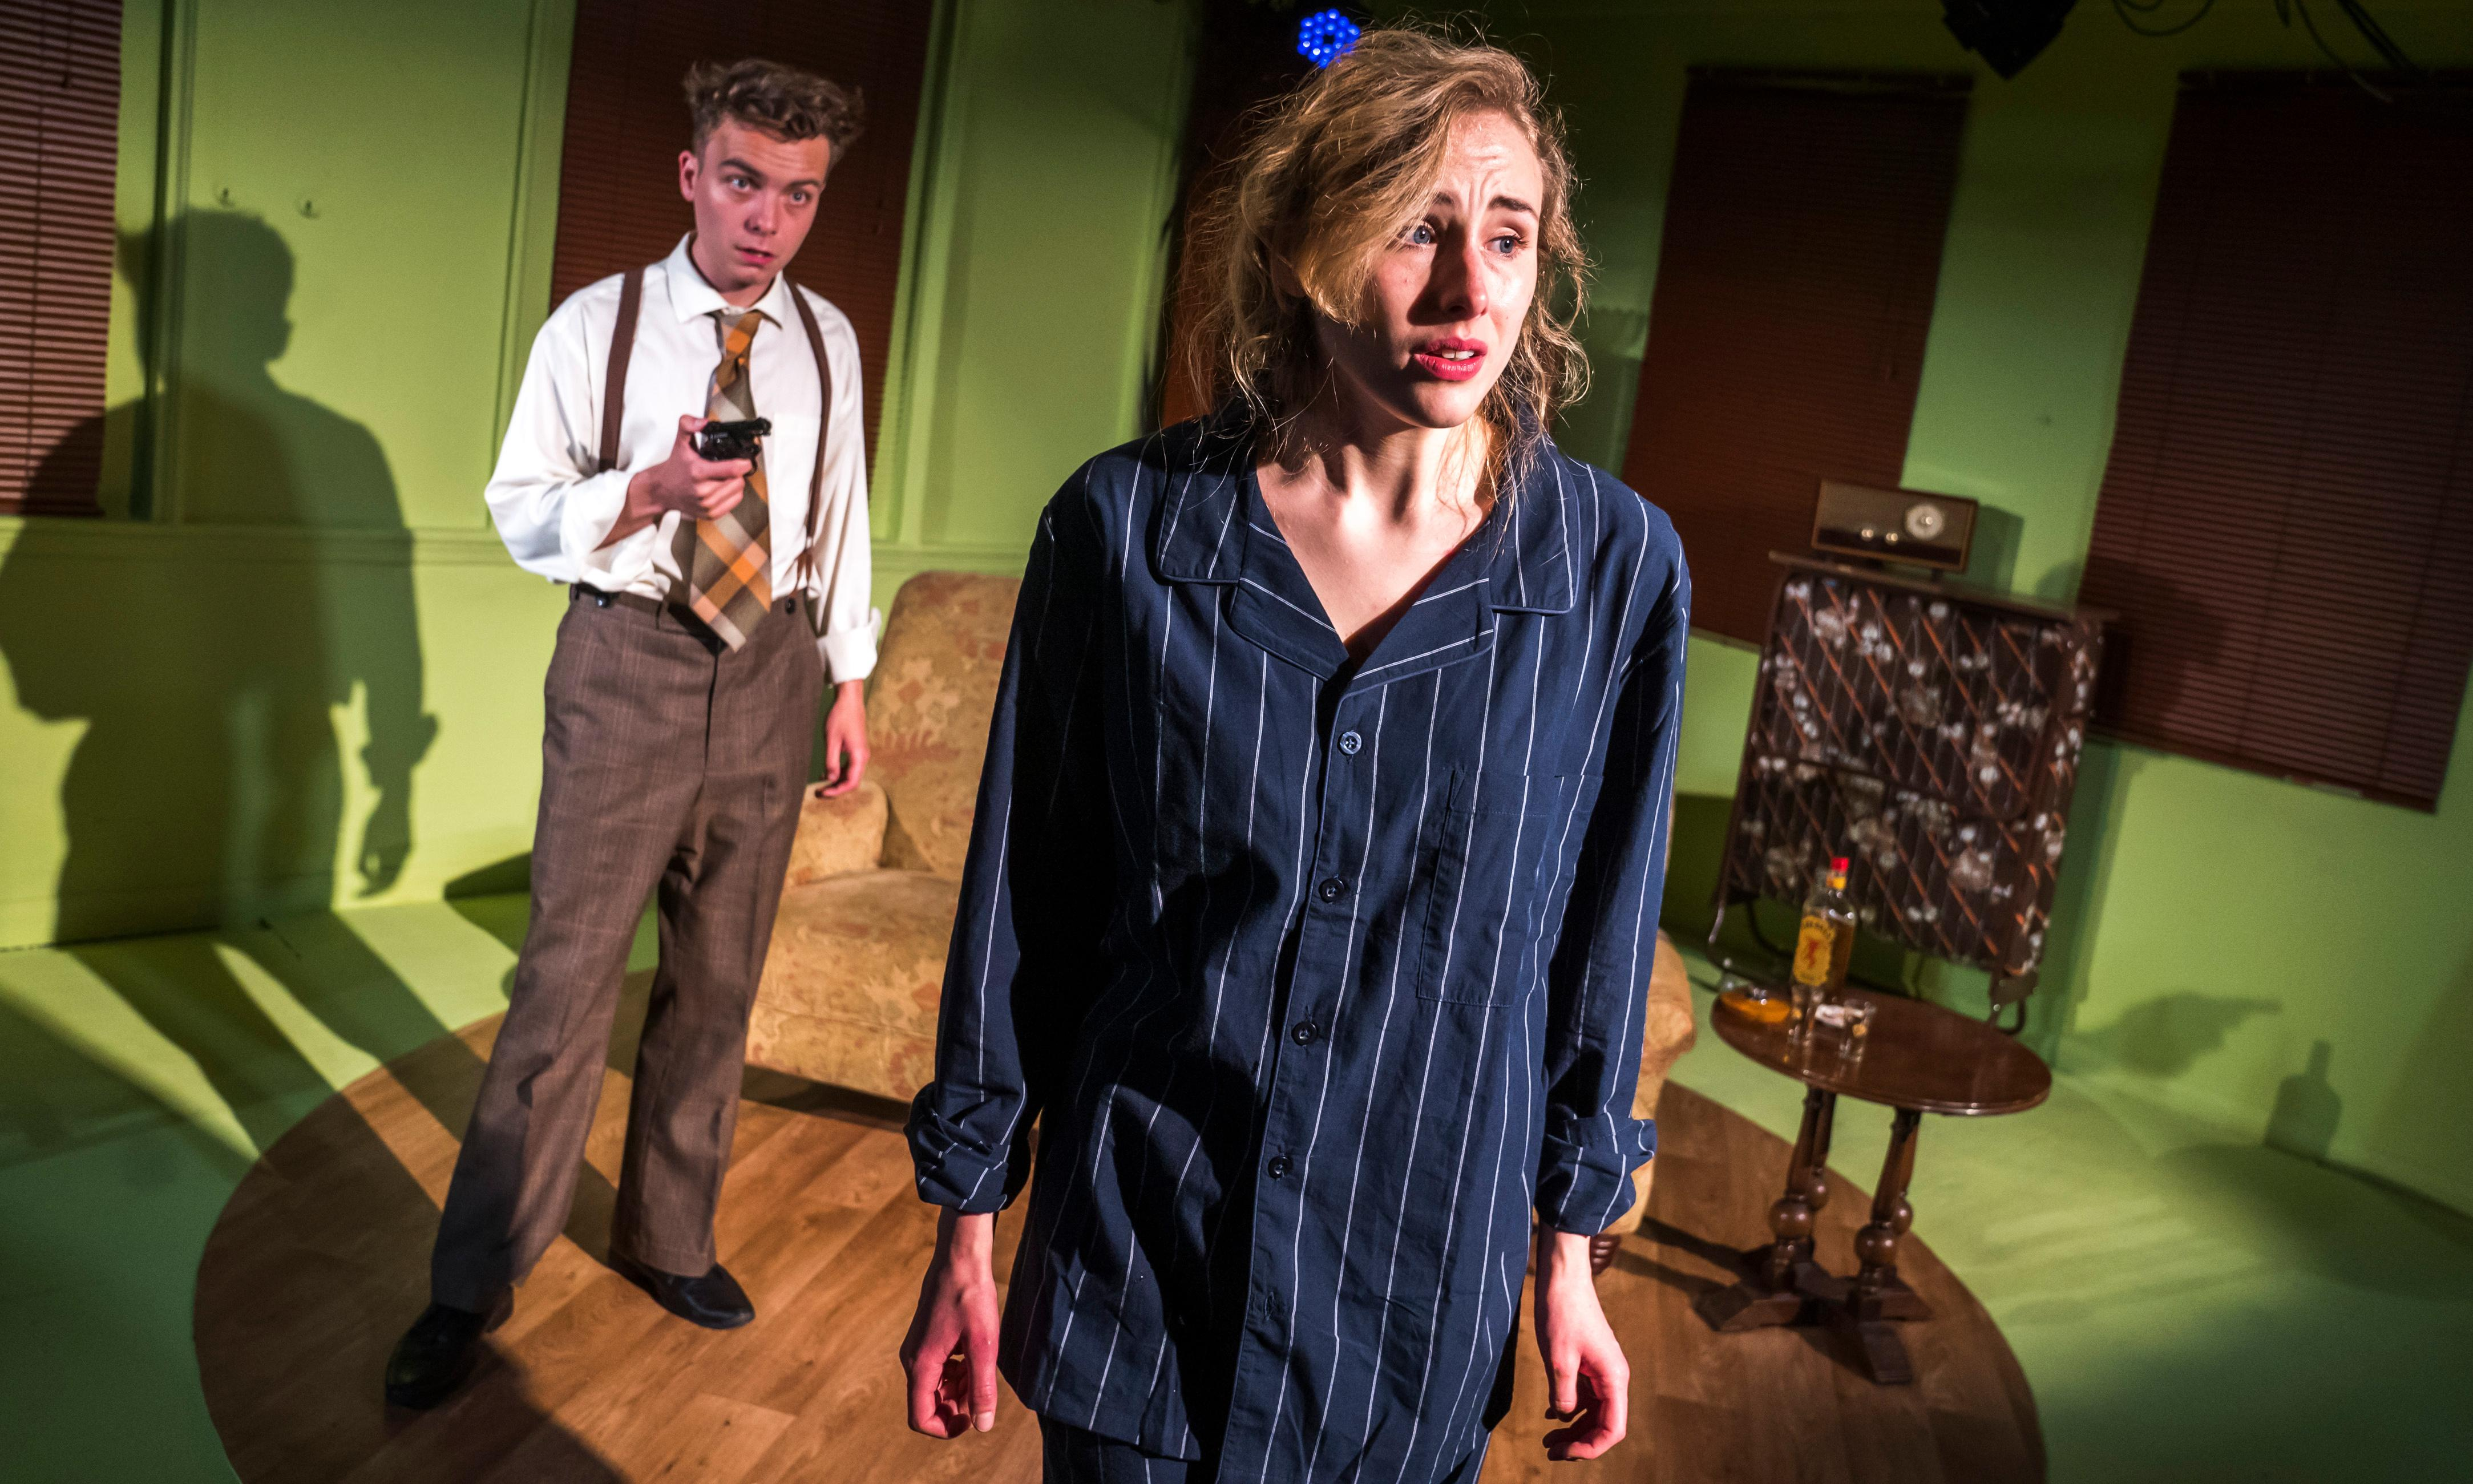 Garry review – murder and sexual torment trigger stellar pub theatre